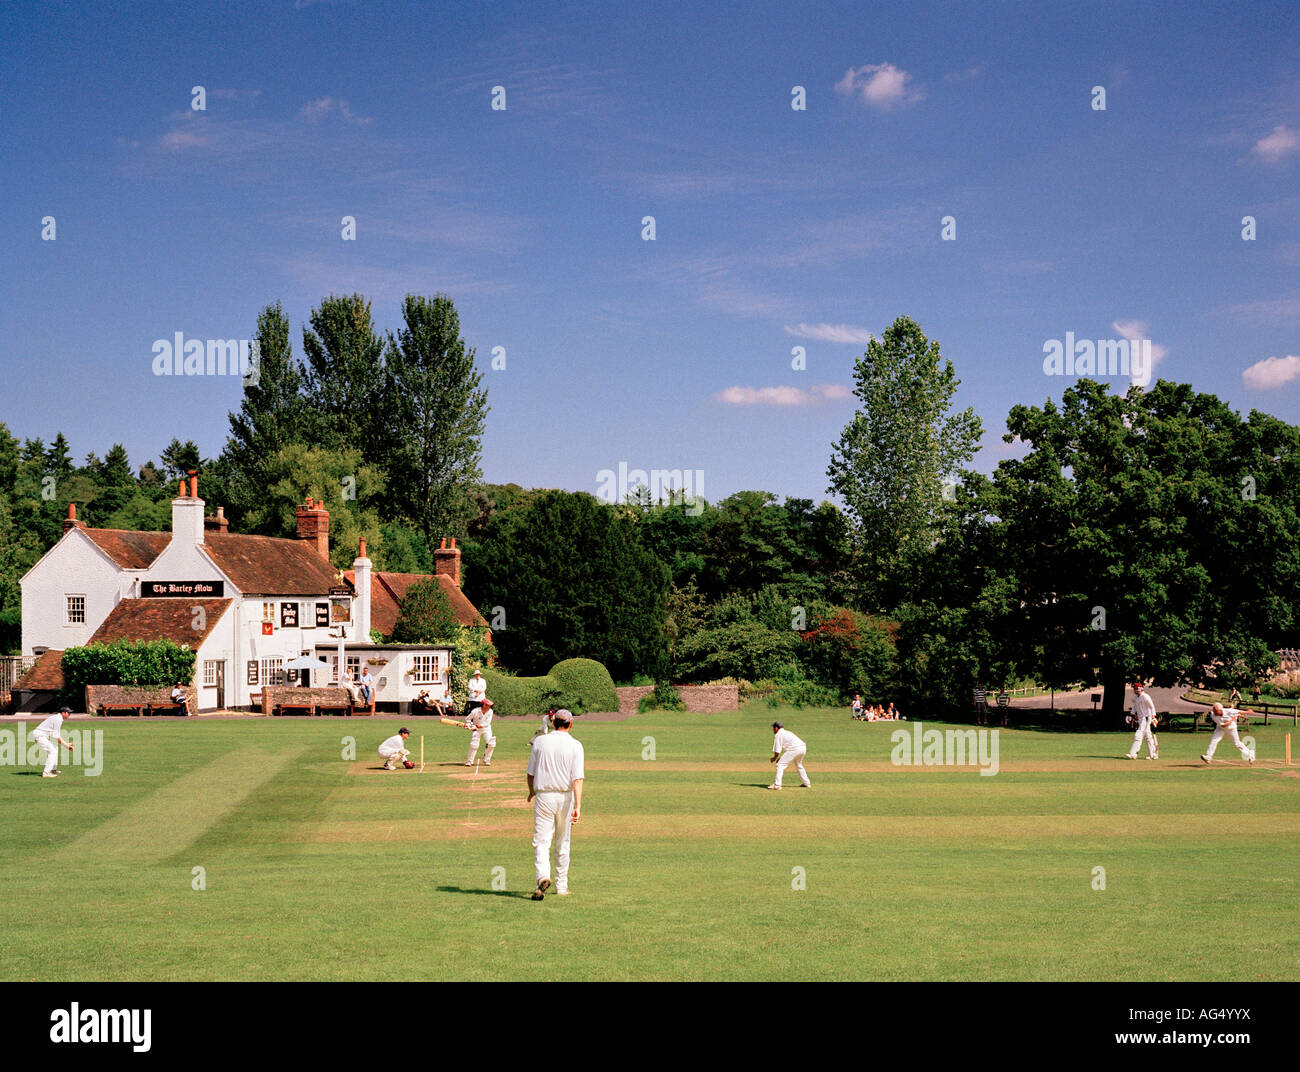 Game of village cricket Tilford Green, Surrey, England, UK. Stock Photo